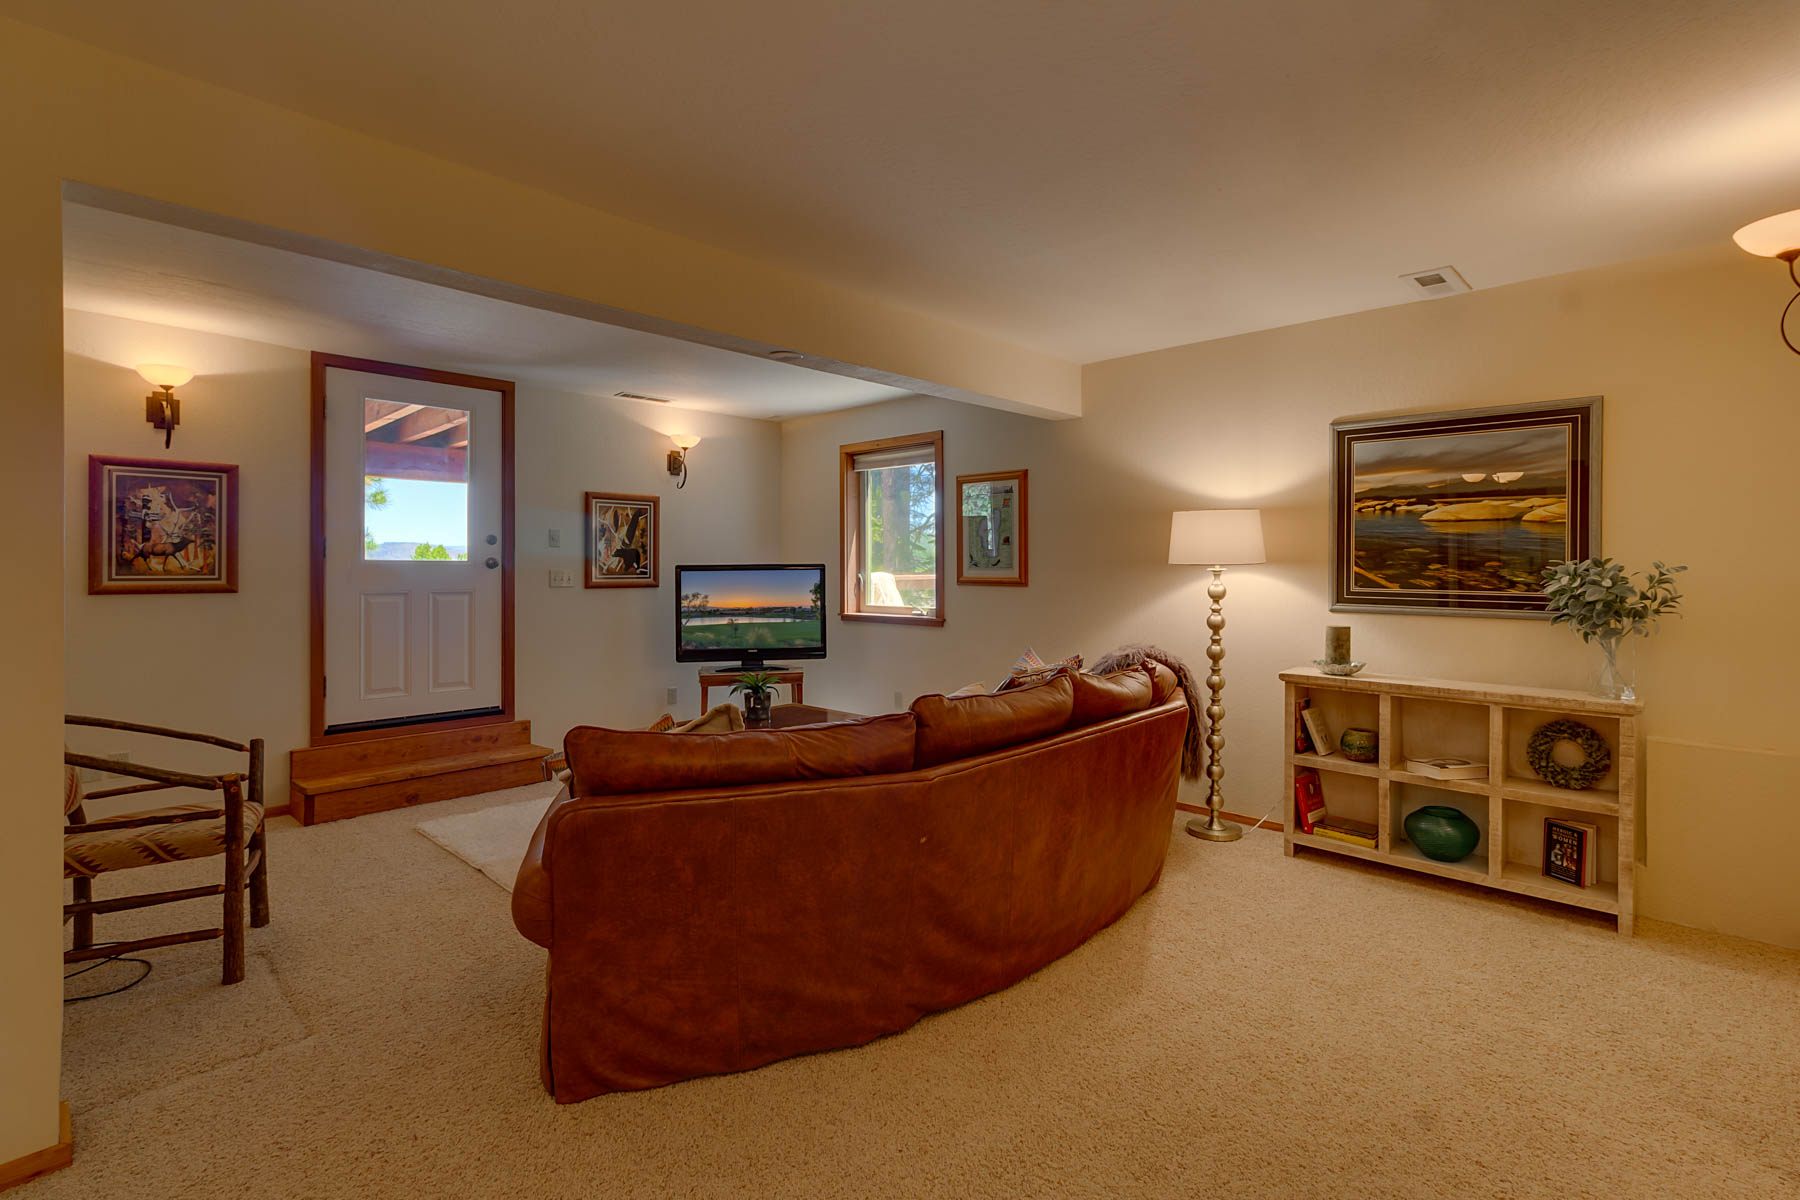 Additional photo for property listing at 235 Basque Drive,  Truckee CA 96161 235 Basque Drive 特拉基, 加利福尼亚州 96161 美国